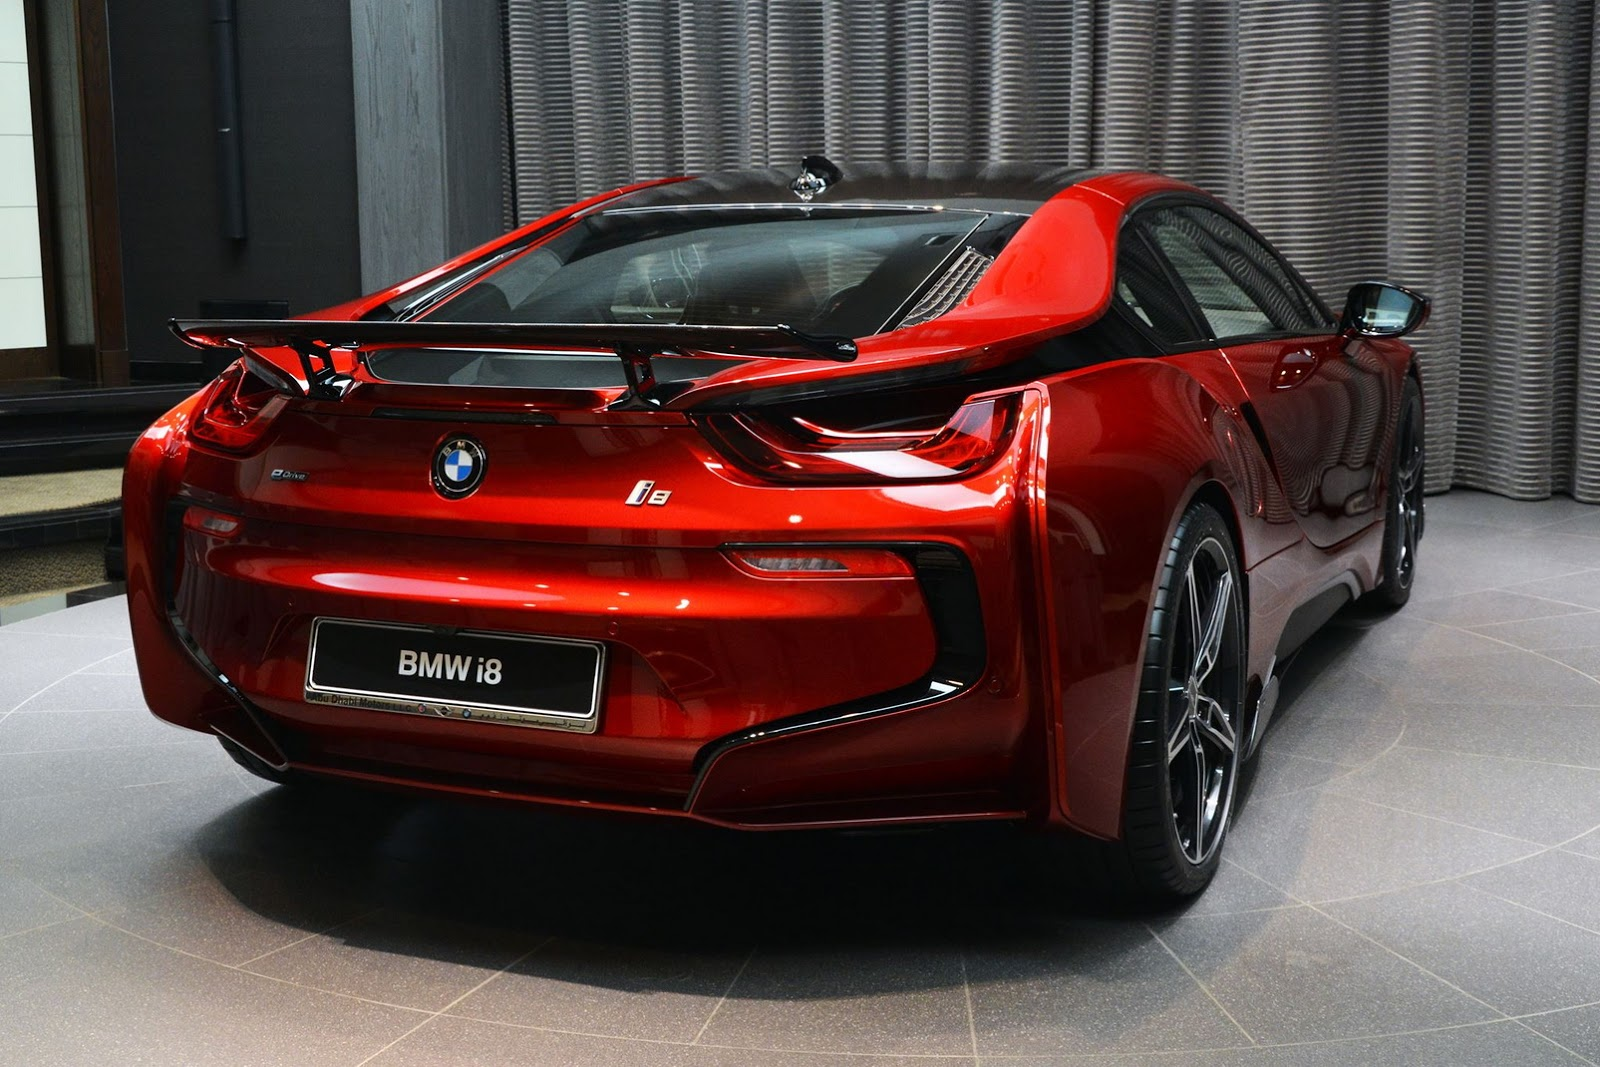 This Custom Lava Red Bmw I8 Is Dripping Hot Carscoops